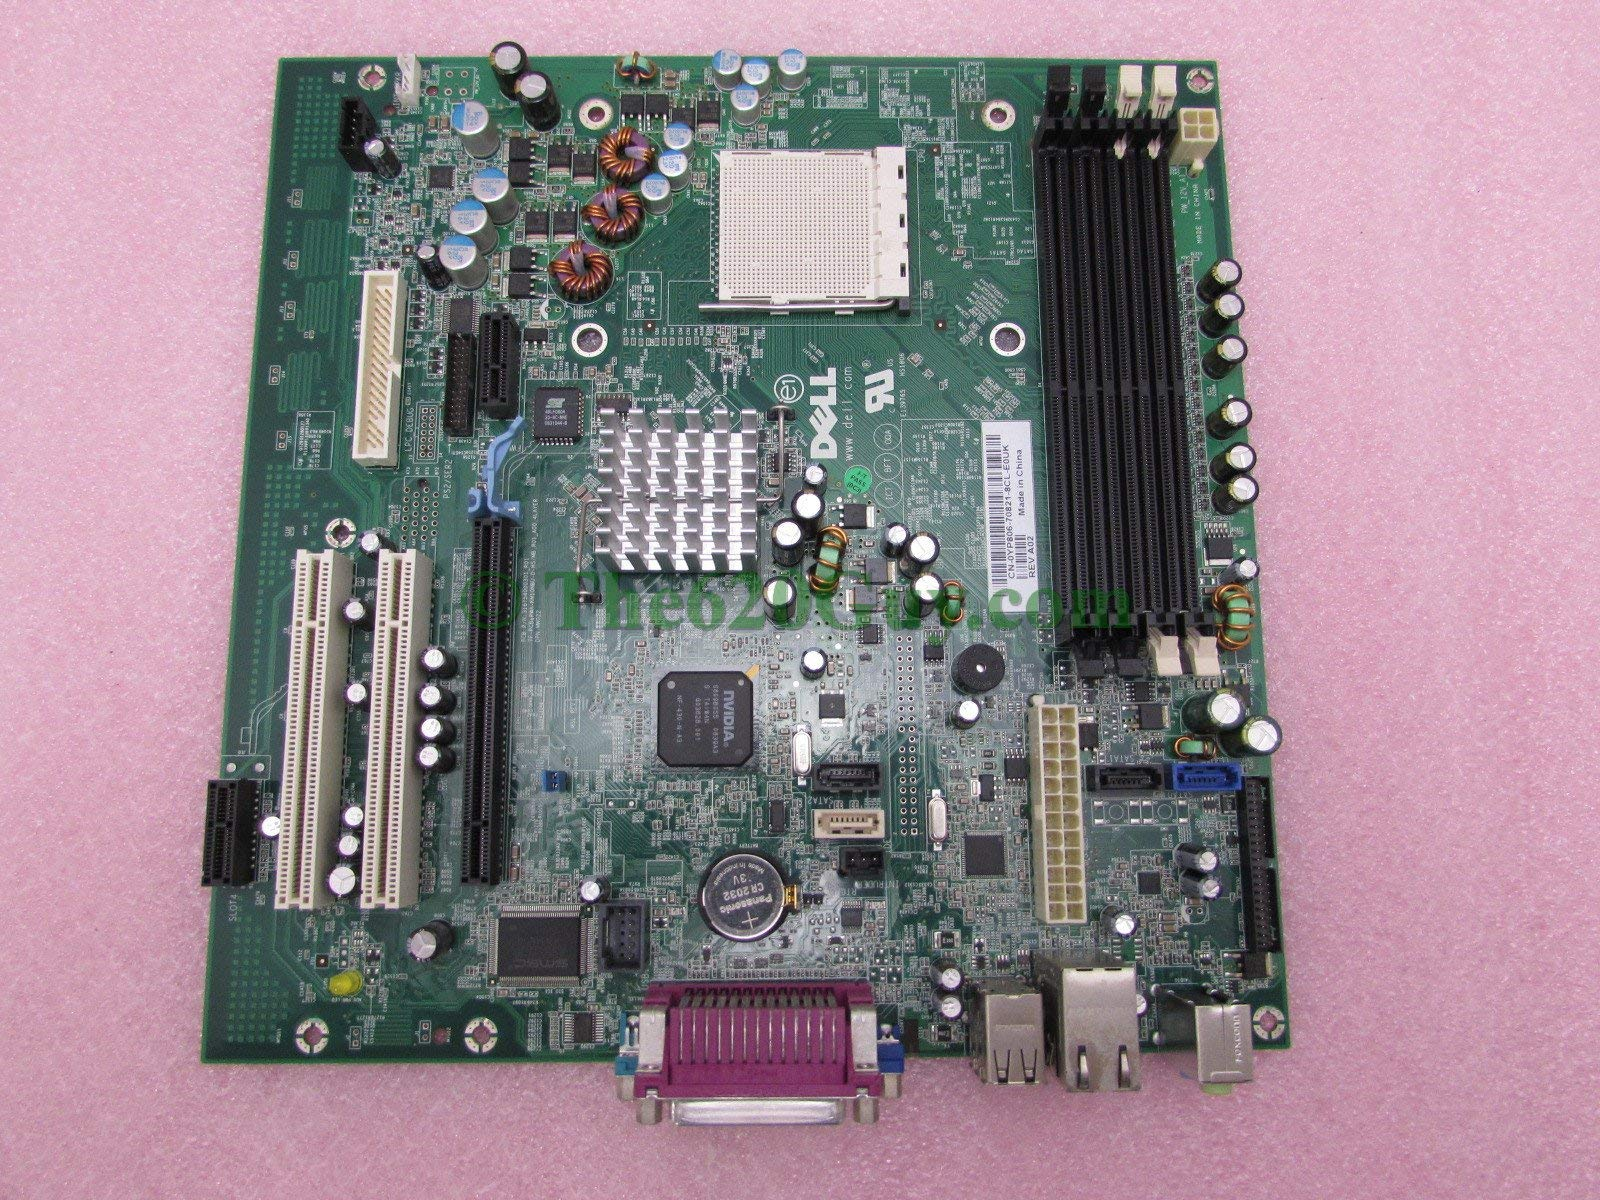 Renewed Dell OptiPlex 740 Mini Tower Desktop Motherboard YP806 UT225 CR984 UY894 0YP806